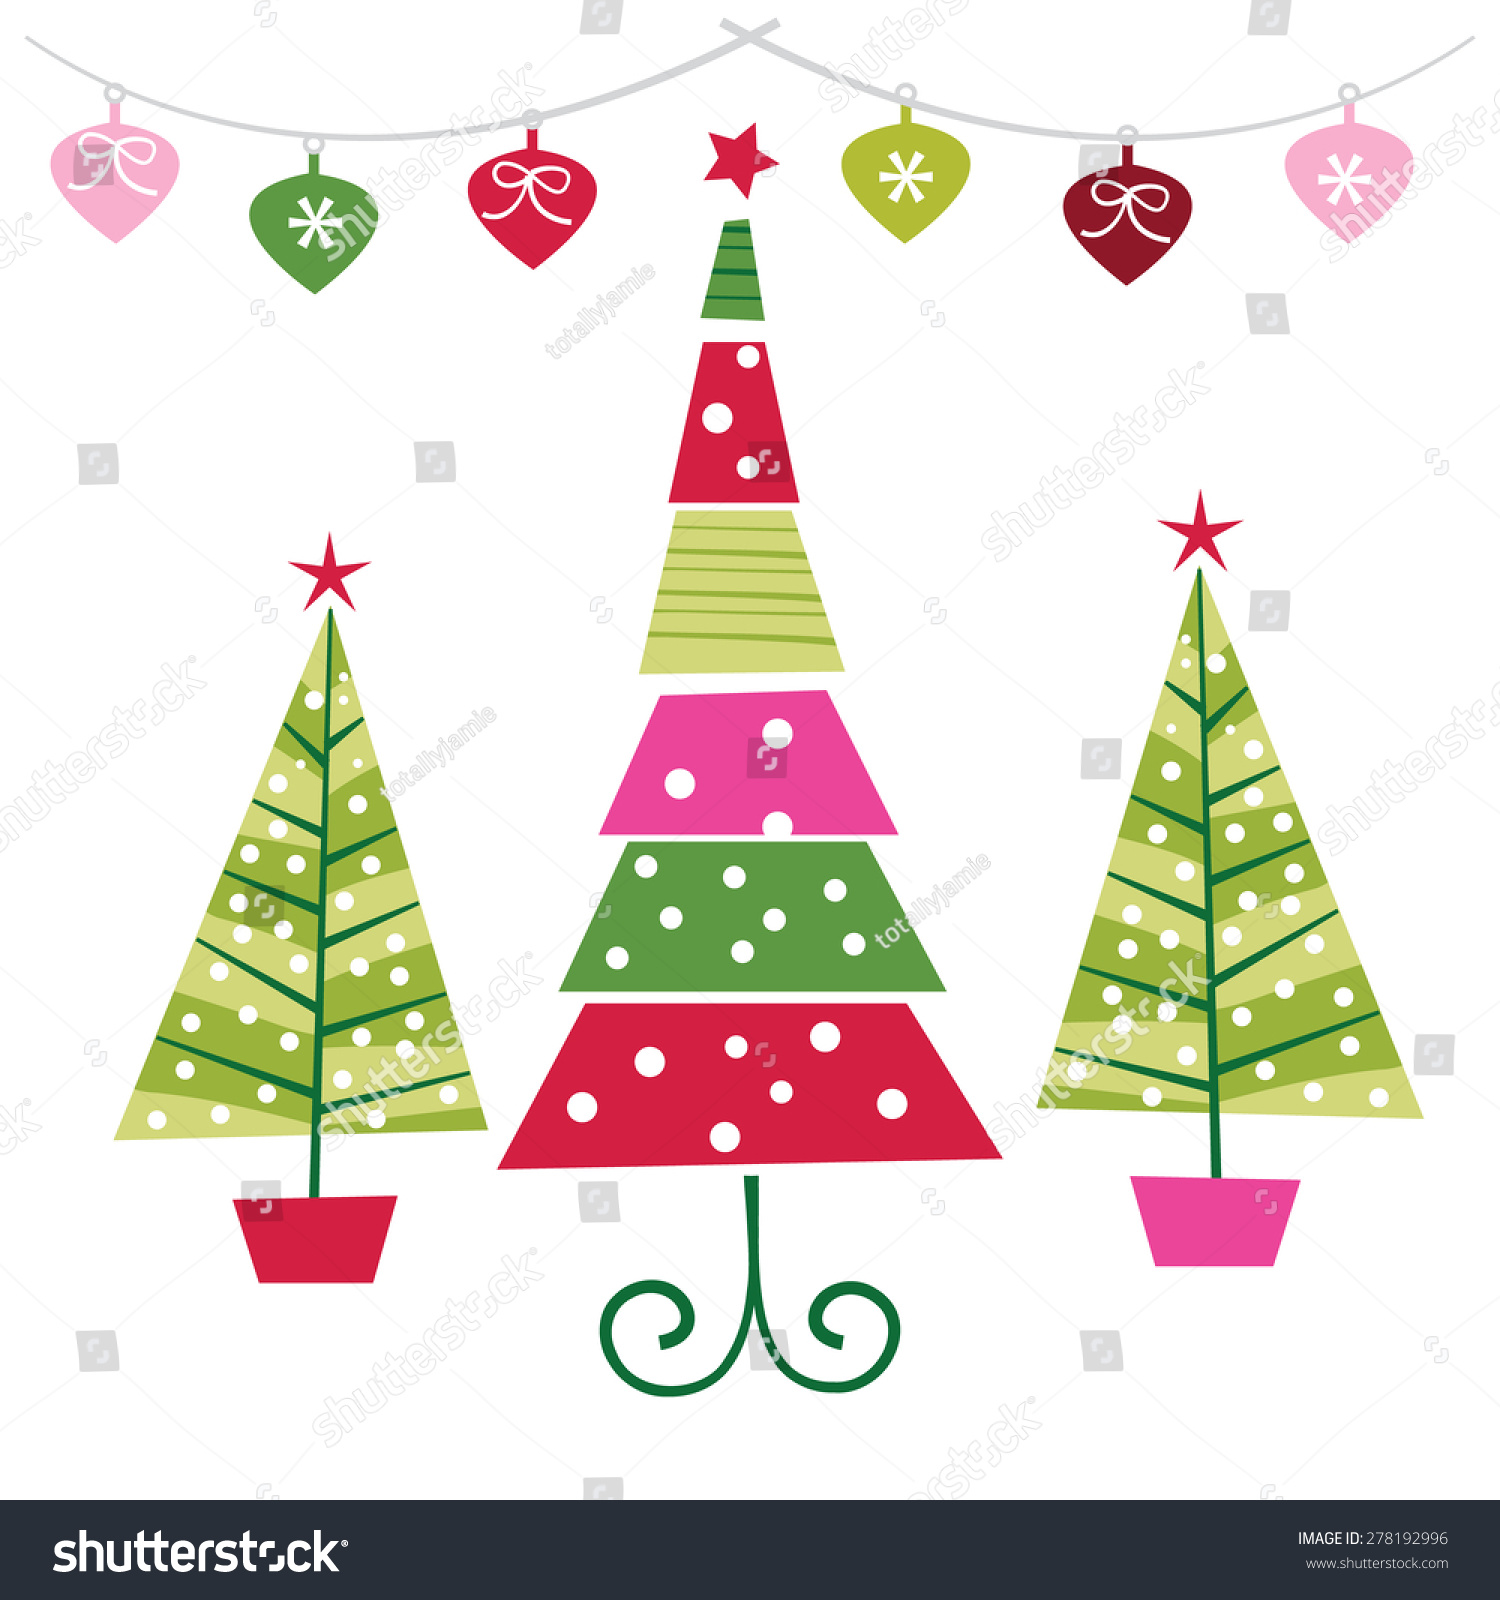 a vector illustration set of funky retro christmas trees with ornaments - Retro Christmas Tree